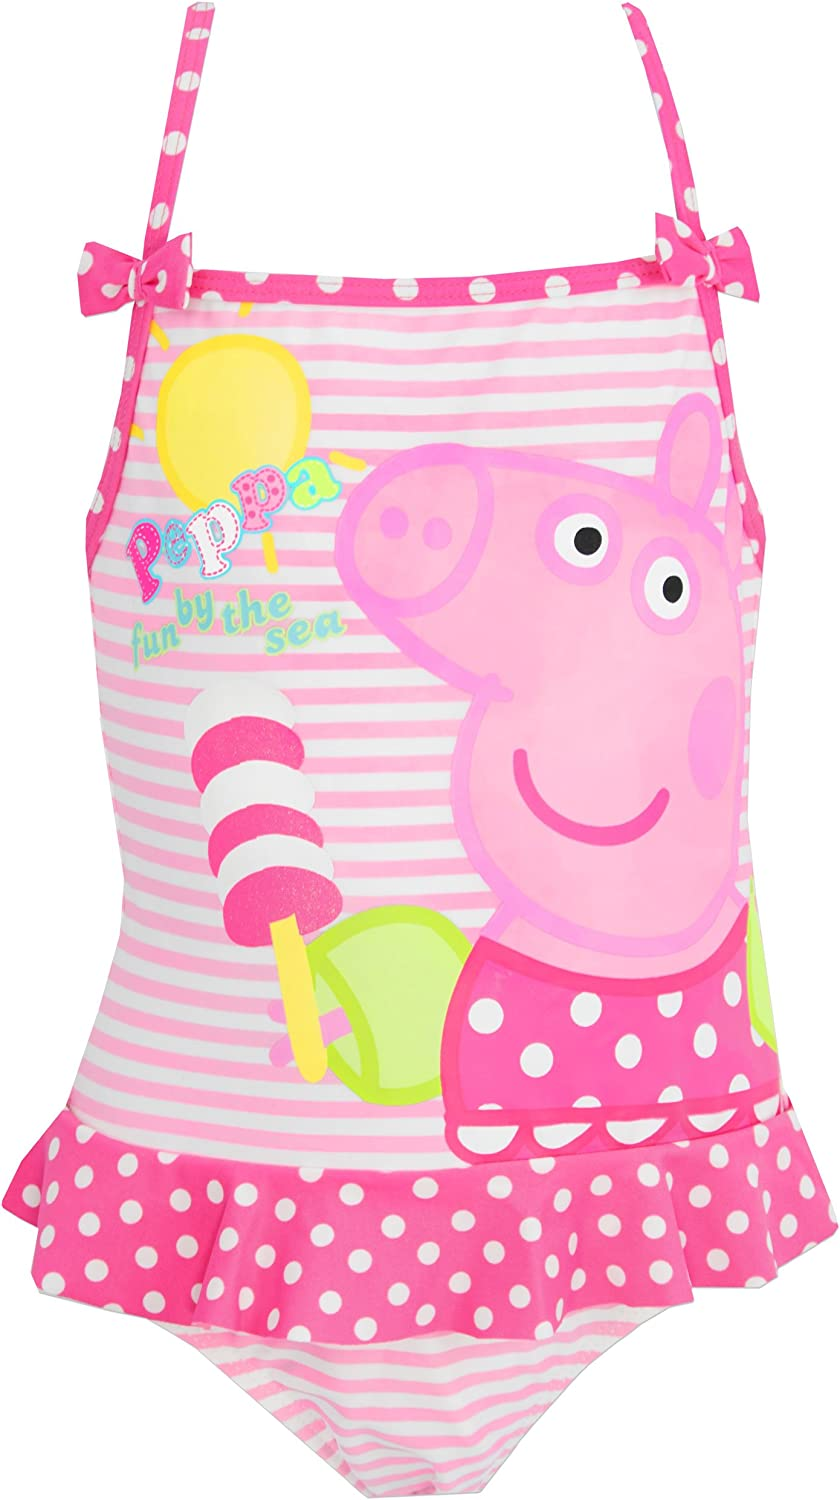 Peppa Pig Toddler Sun Protection Sun Hat 2-3 Years NEW WITH TAGS